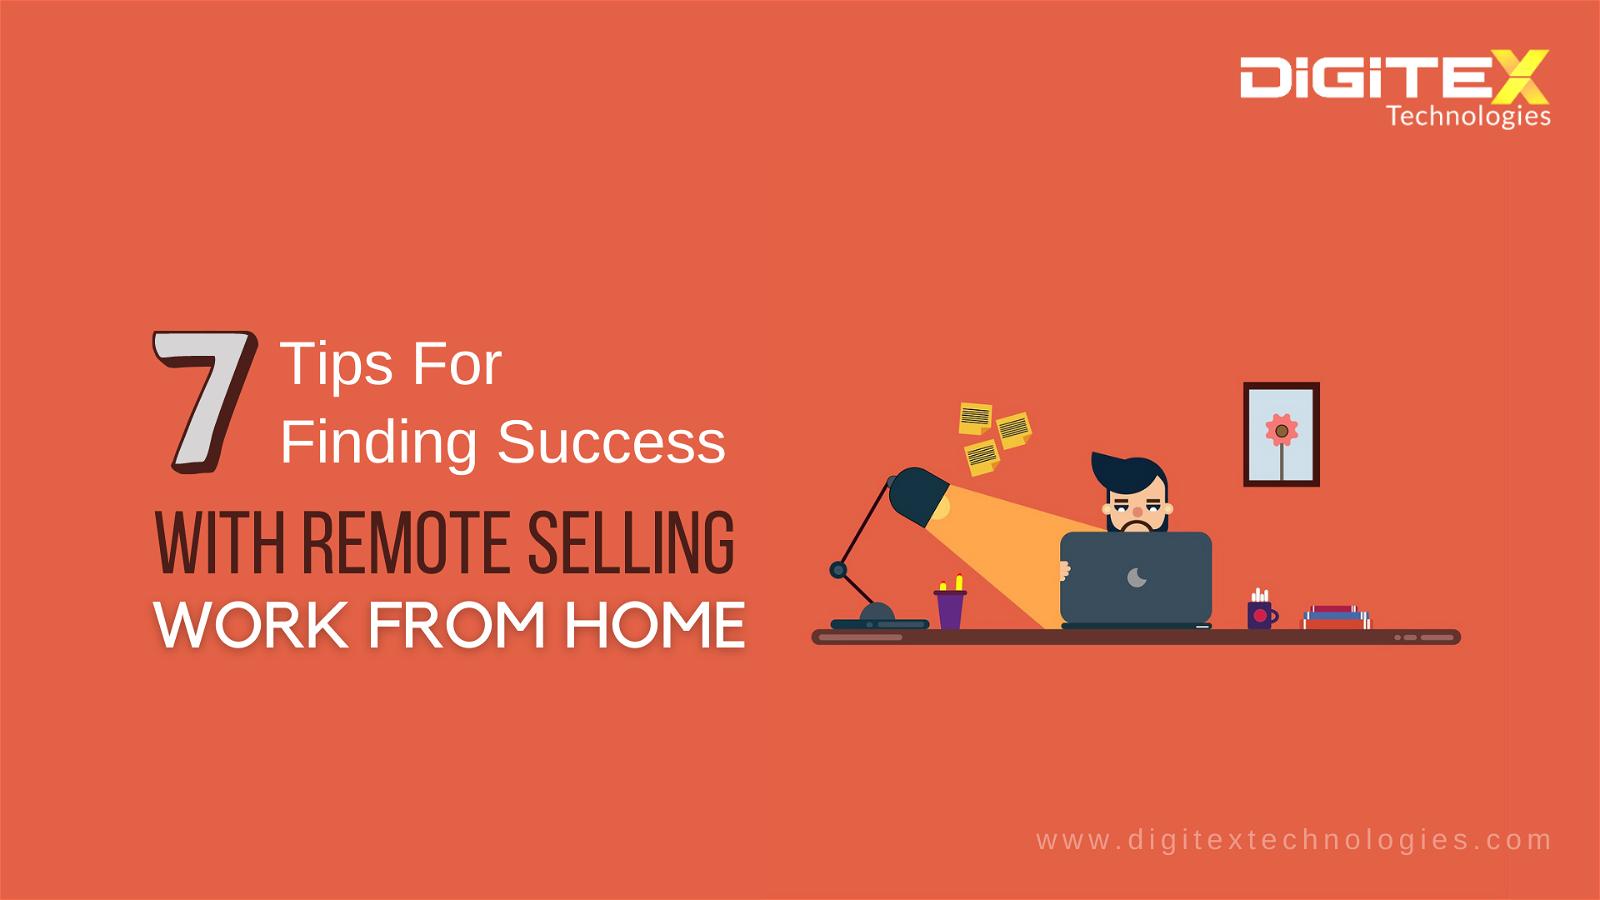 7 Tips For Finding Success With Remote Selling: Work From Home